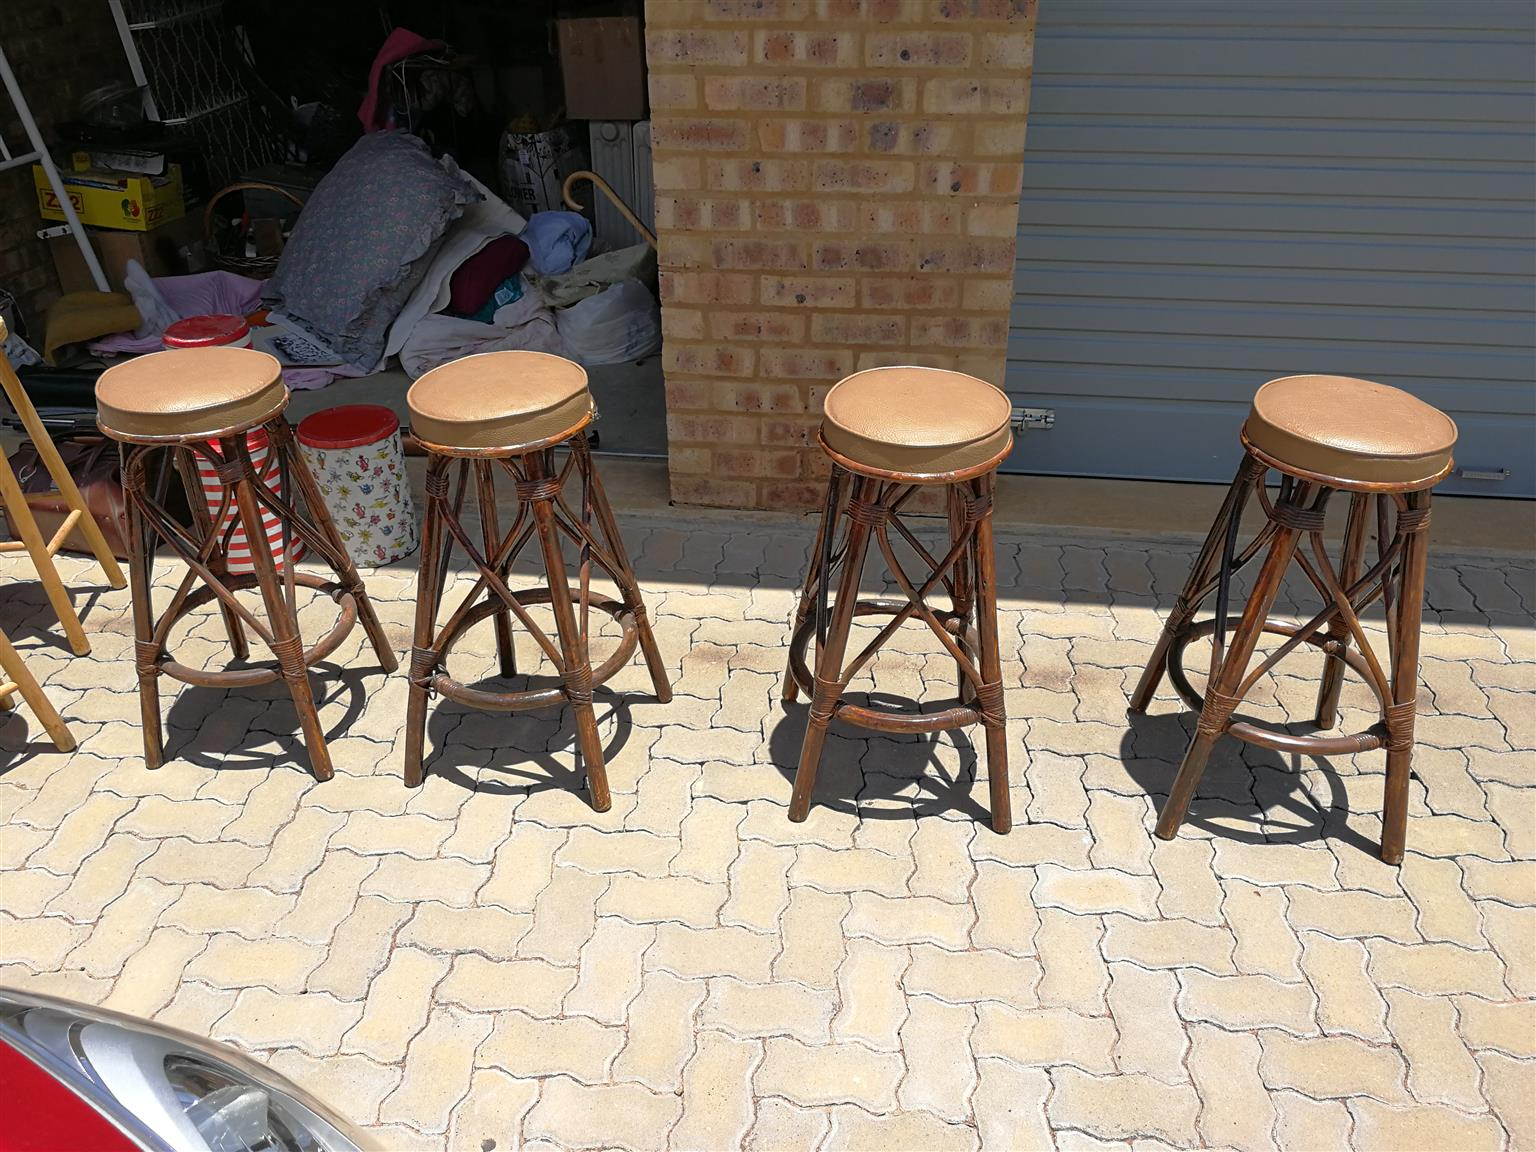 Kitchen stool chairs(wooden)